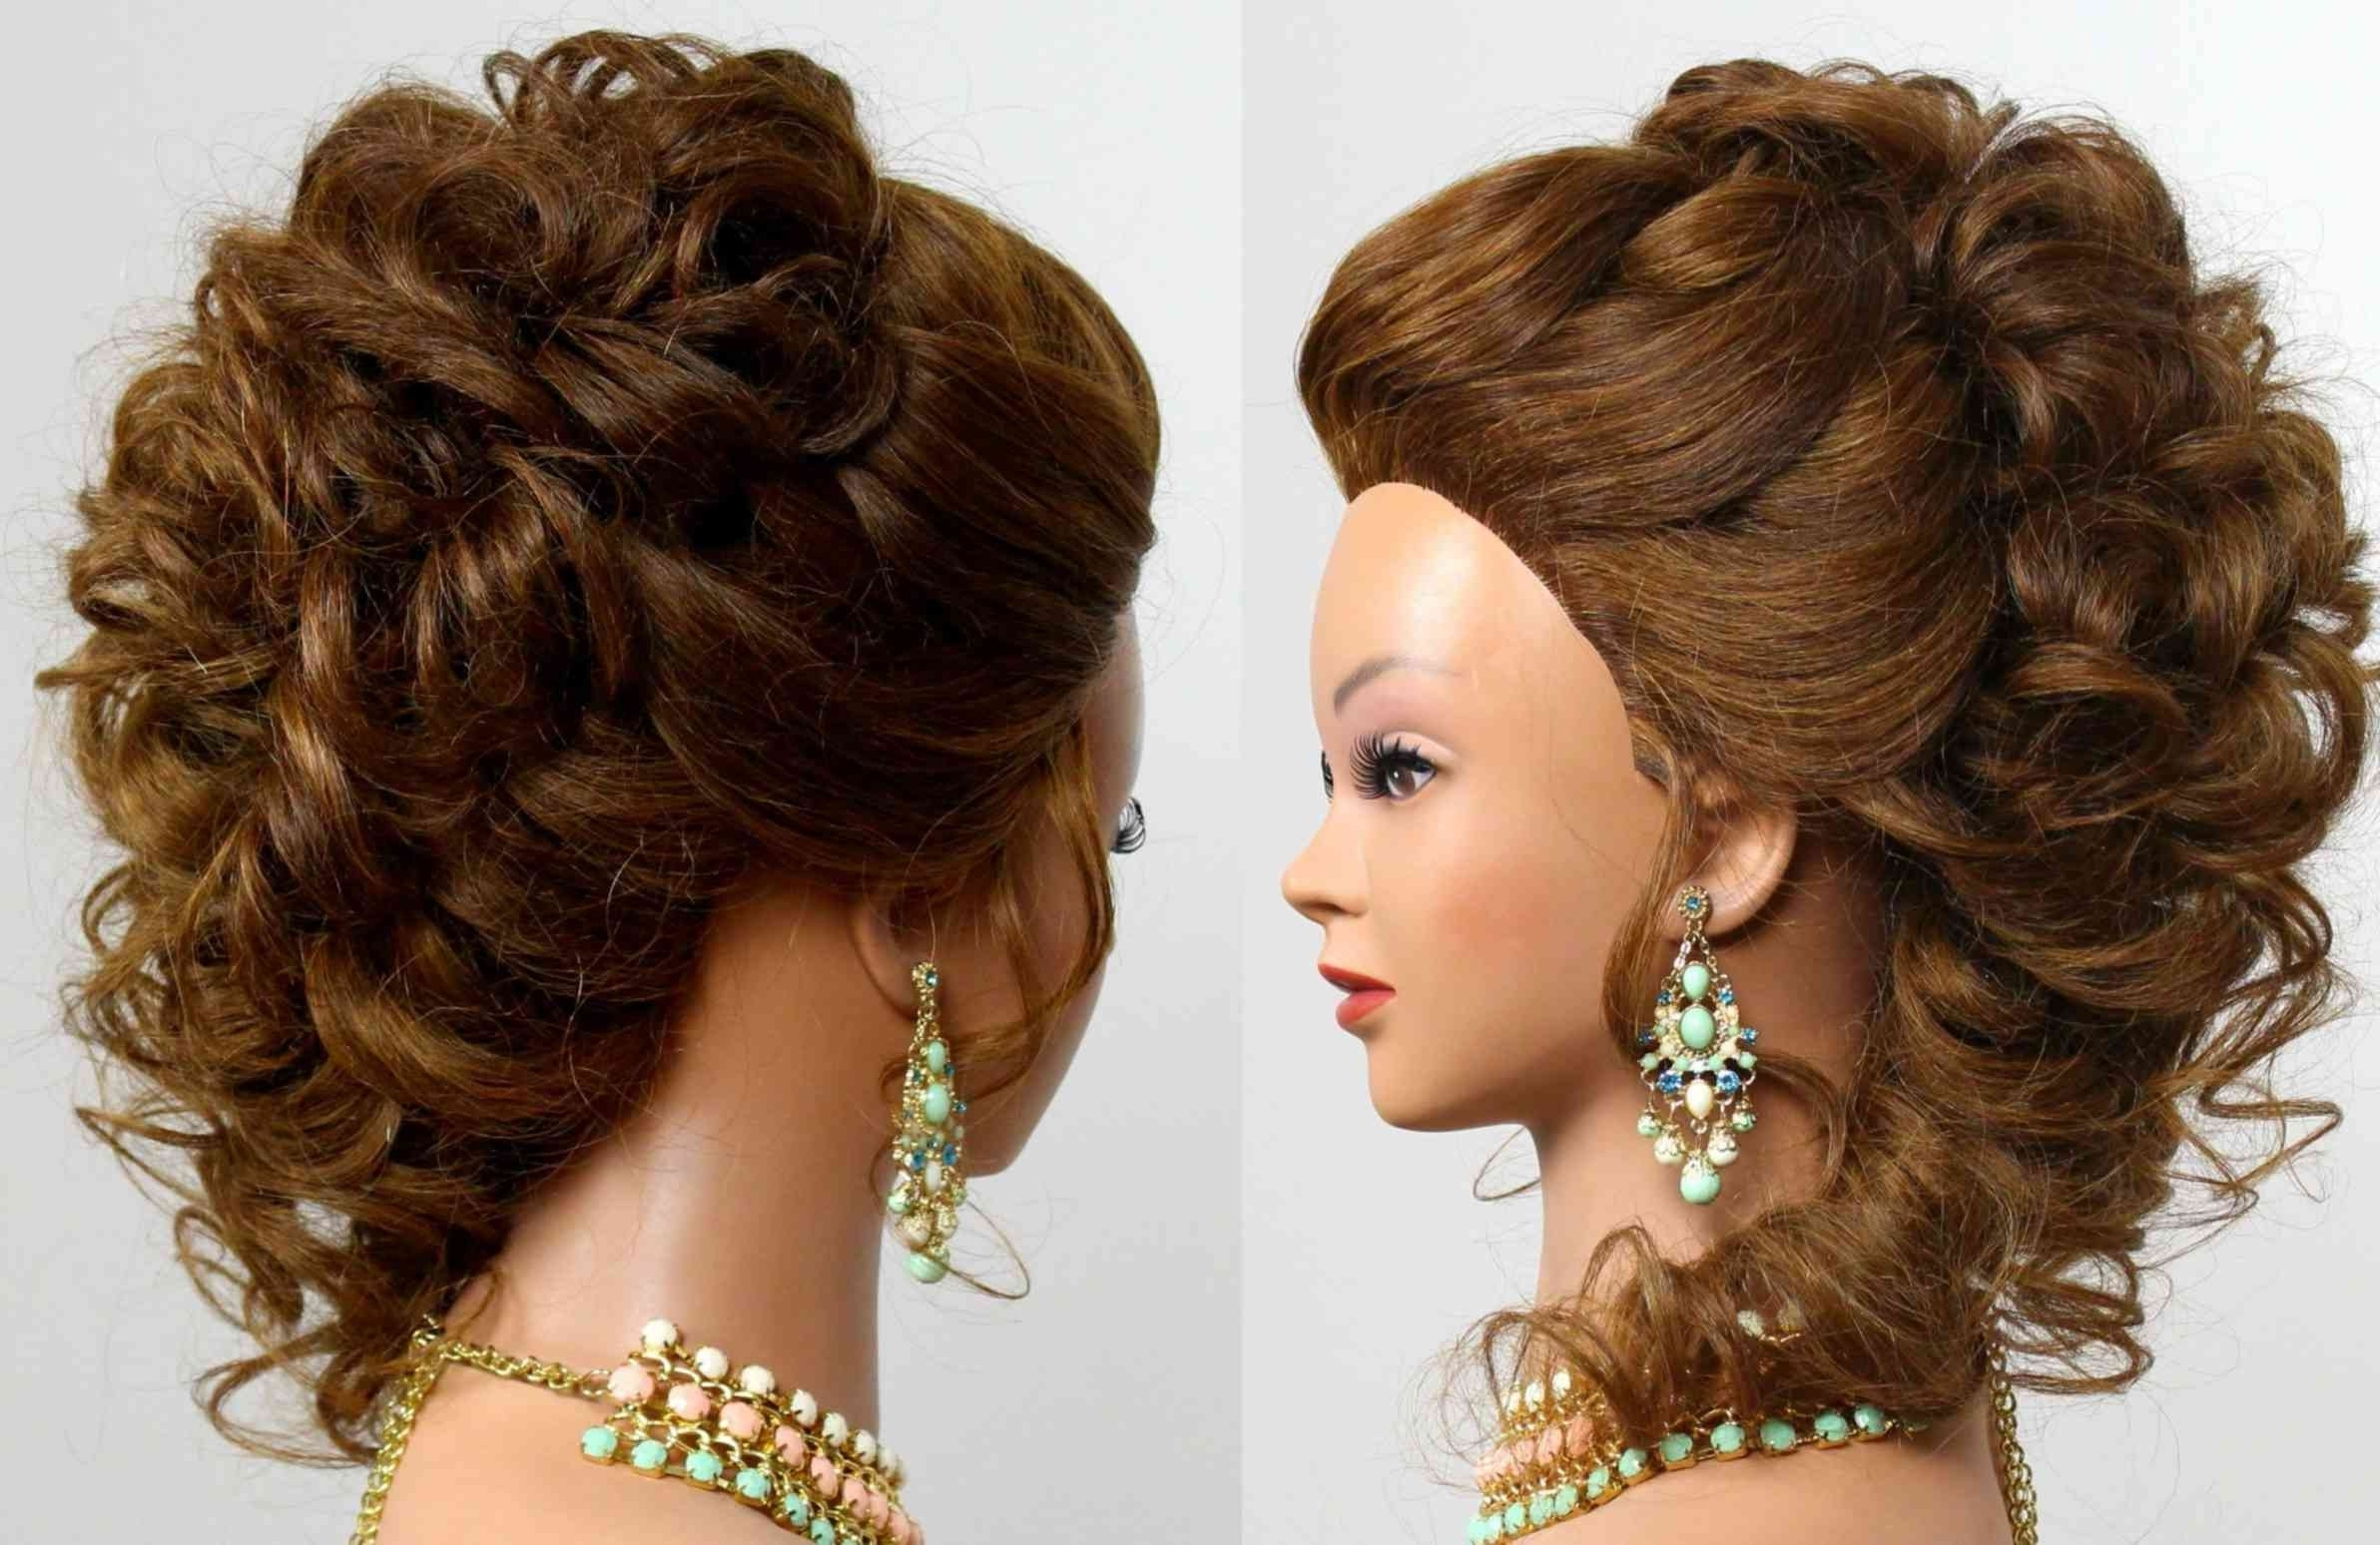 Prom Hairstyles For Long Hair Updo Fresh 35 Funky Of Prom Hairstyles Inside Funky Updo Hairstyles For Long Hair (View 15 of 15)